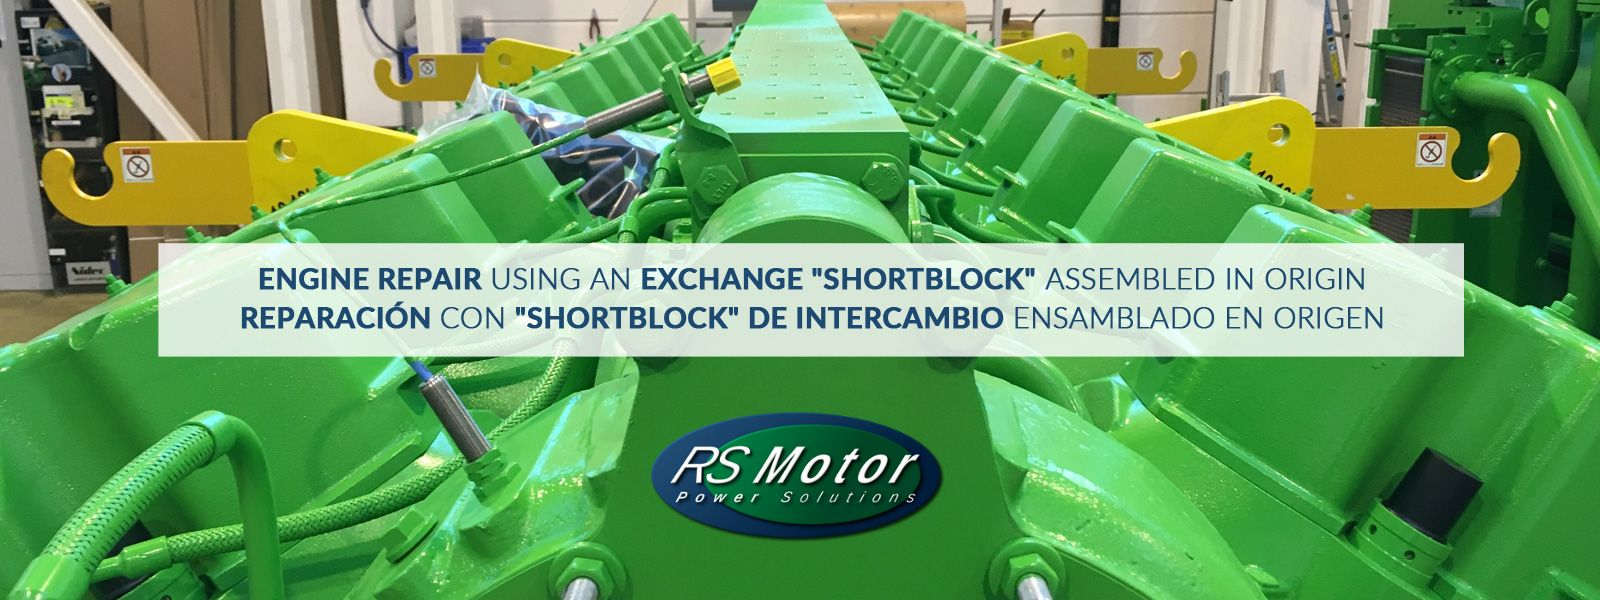 Engine-repair-using-an-exchange-shortblock-assembled-in-origin